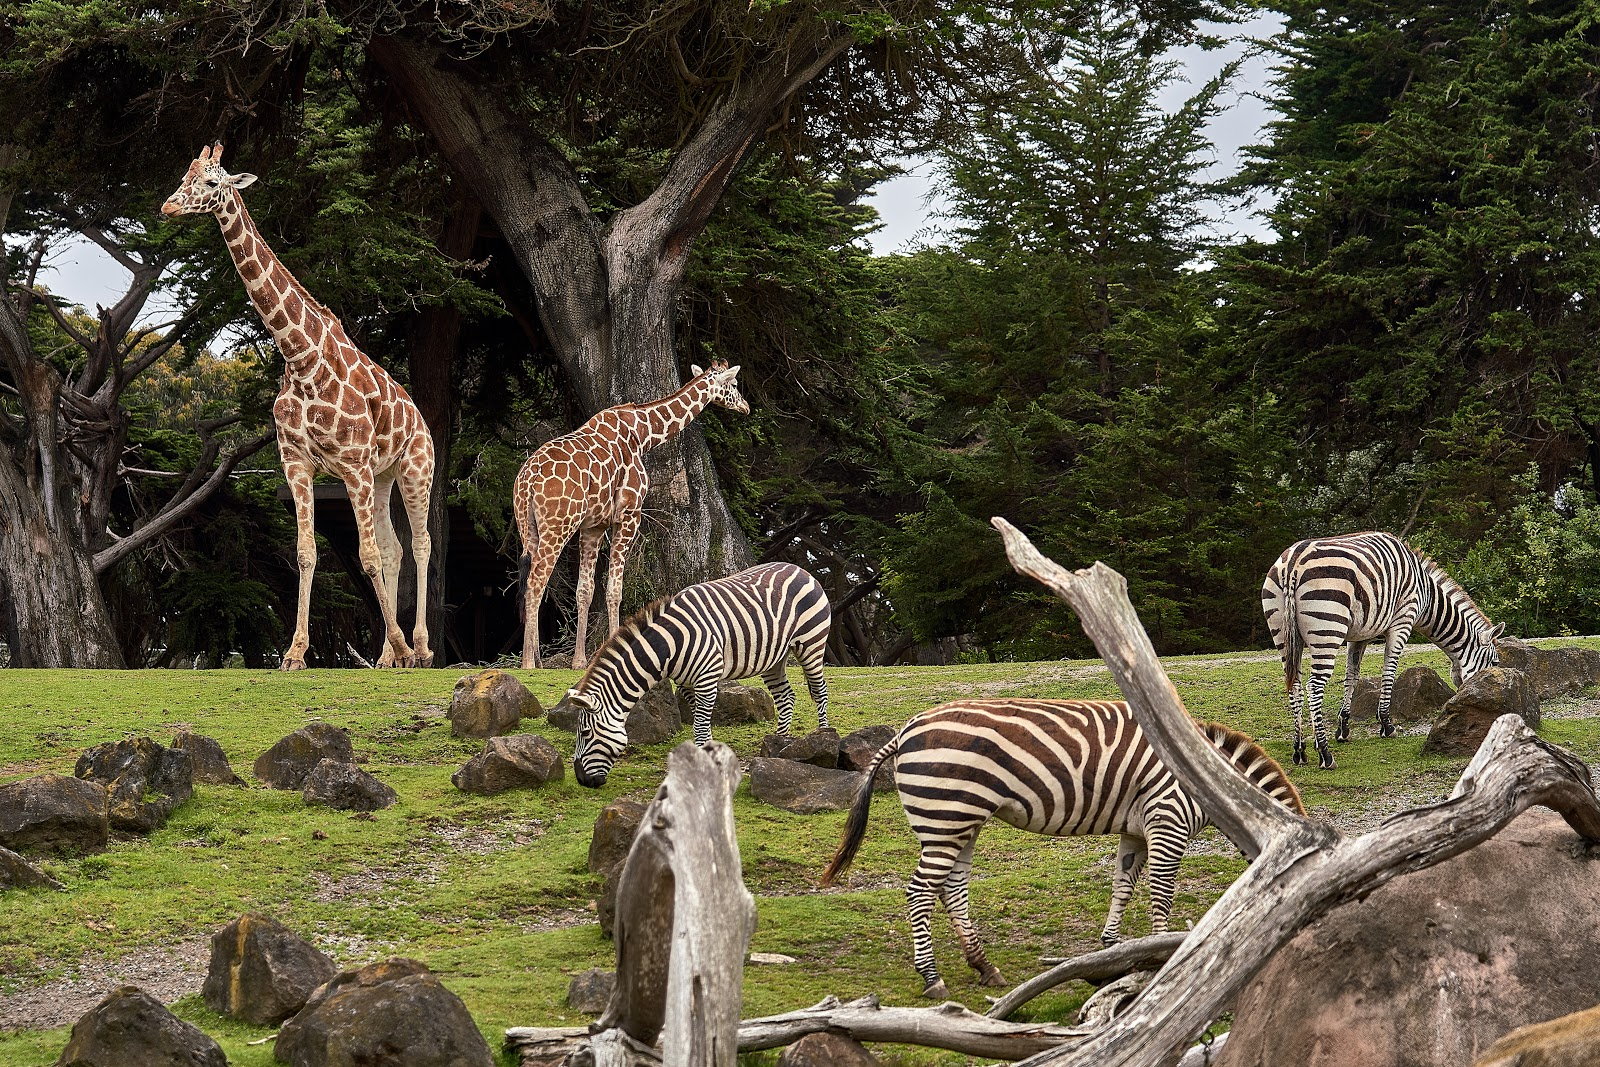 Photo of three zebras and two giraffes in green grass with trees in the distance